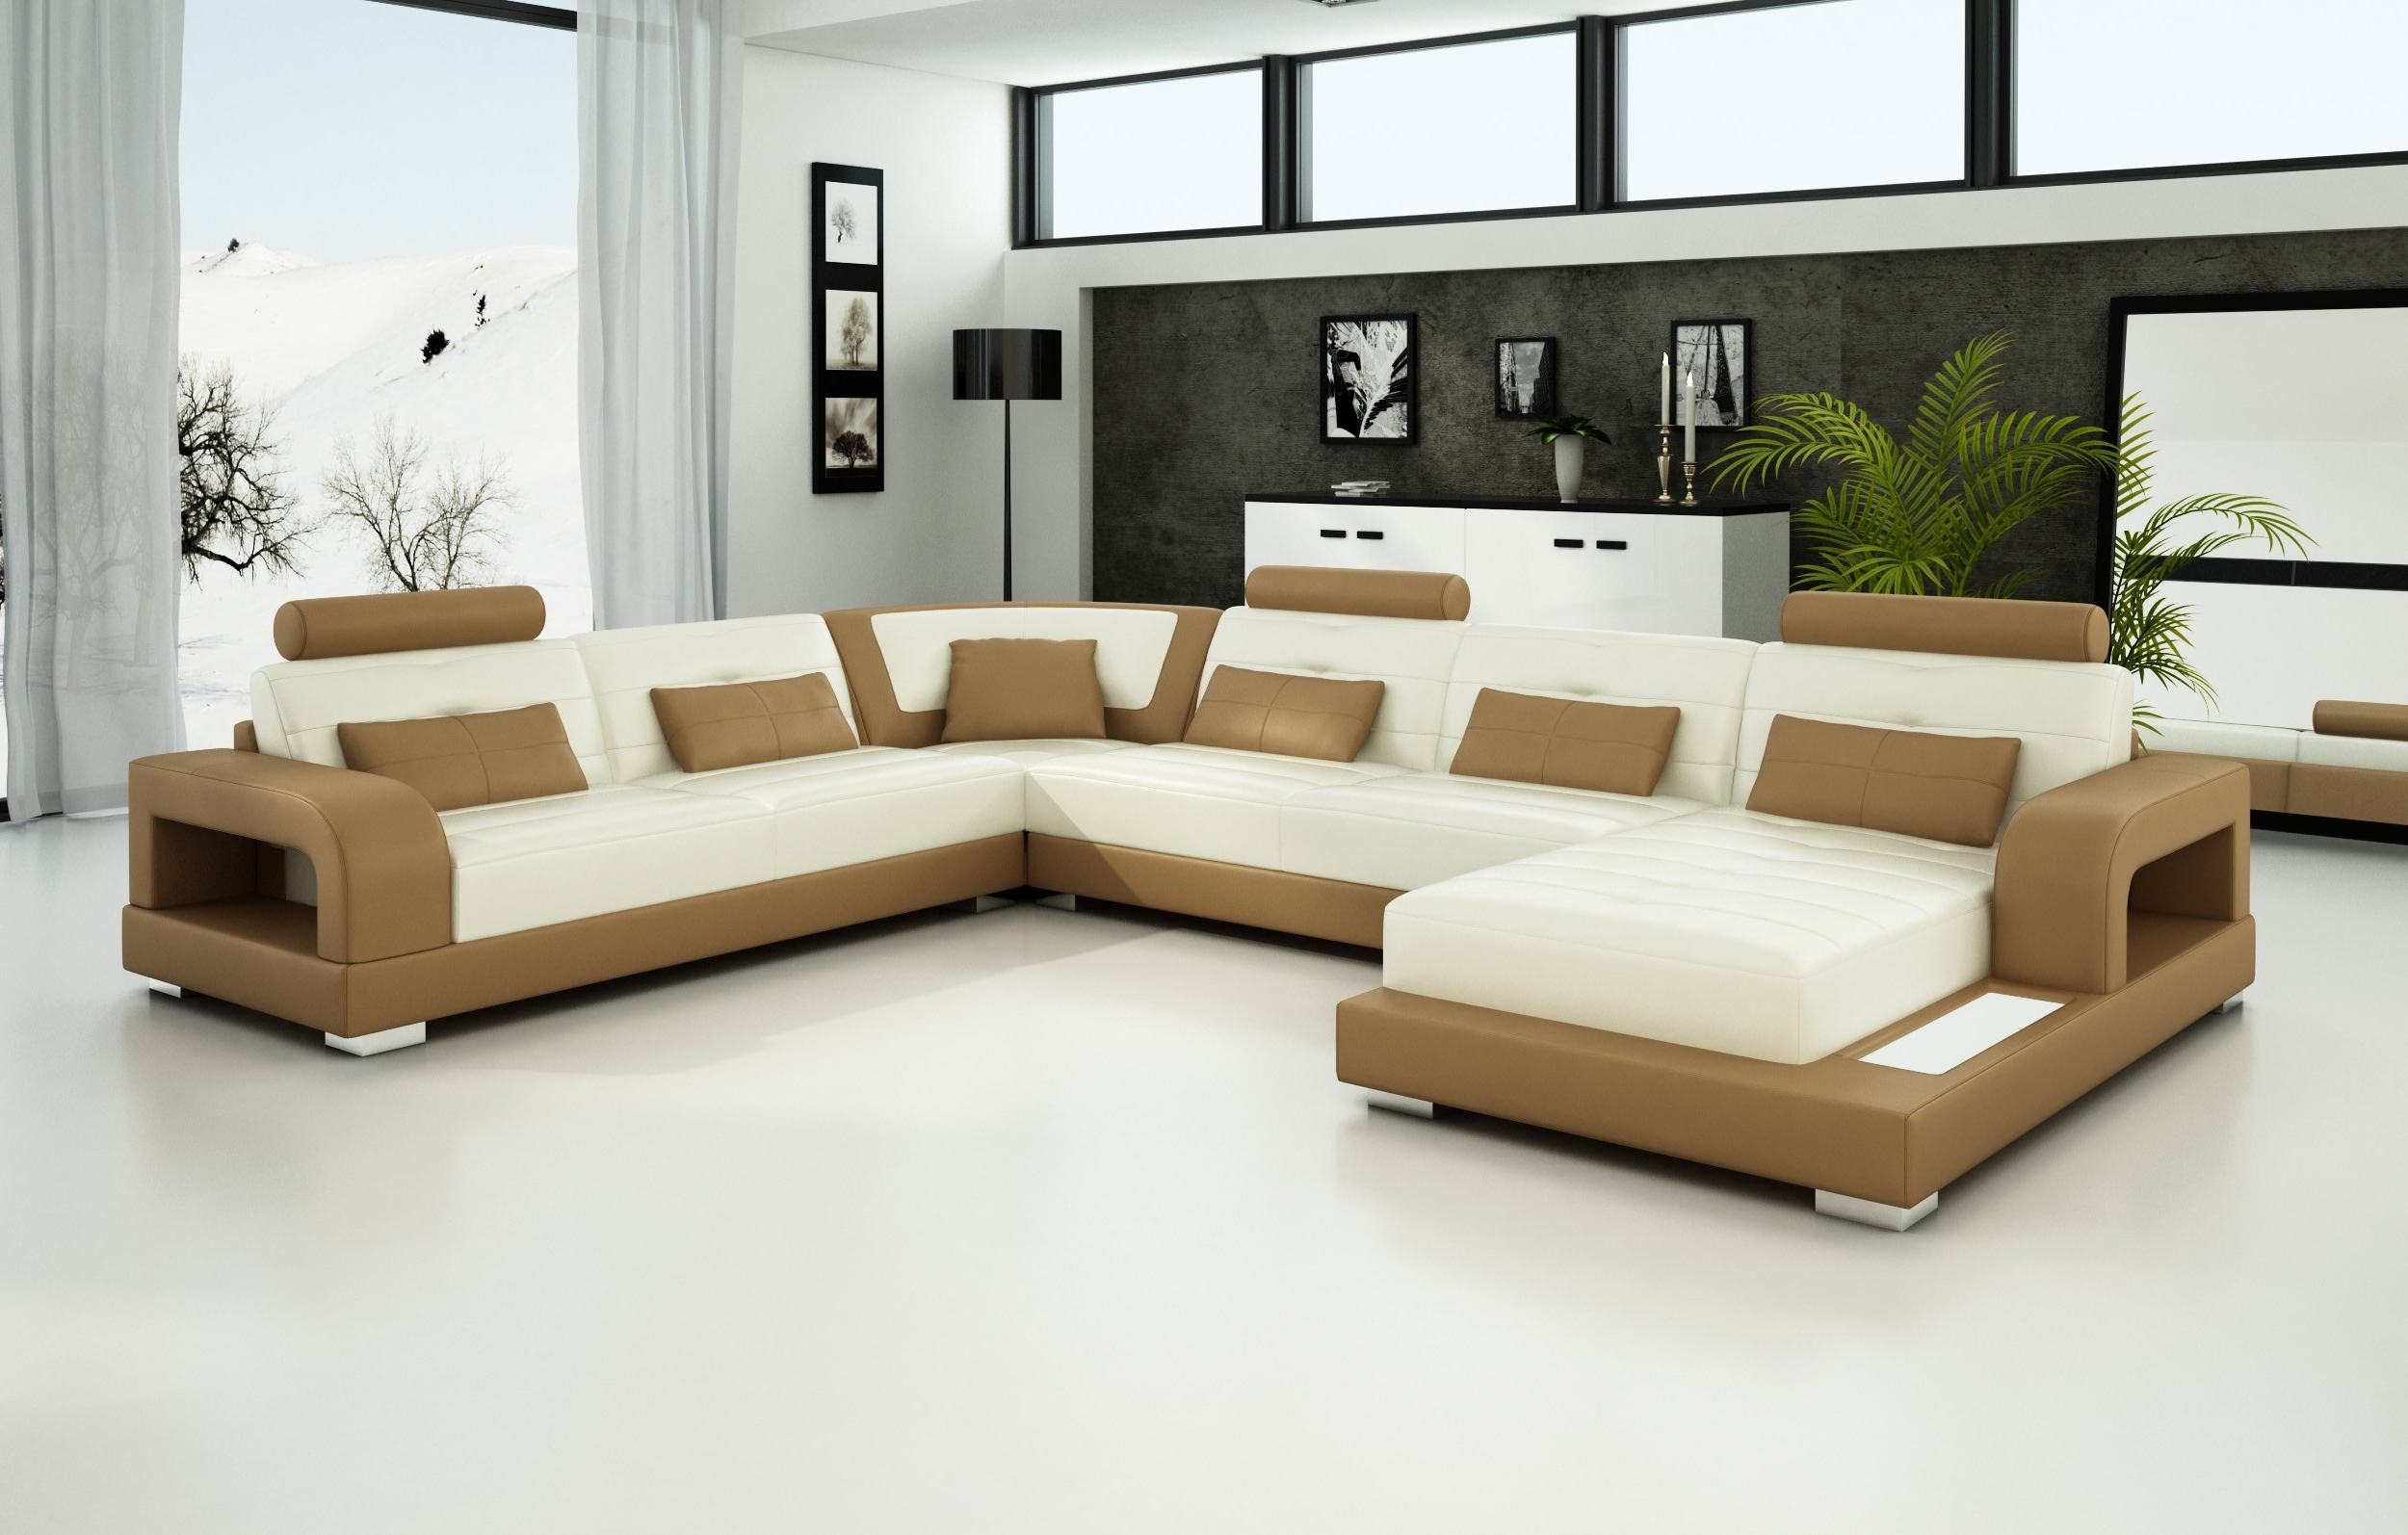 Trinidad And Tobago Sectional Sofas With Most Popular Olympian Sofas Pesaro Light Brown Leather Sofa – Sectional Sofas (View 10 of 15)